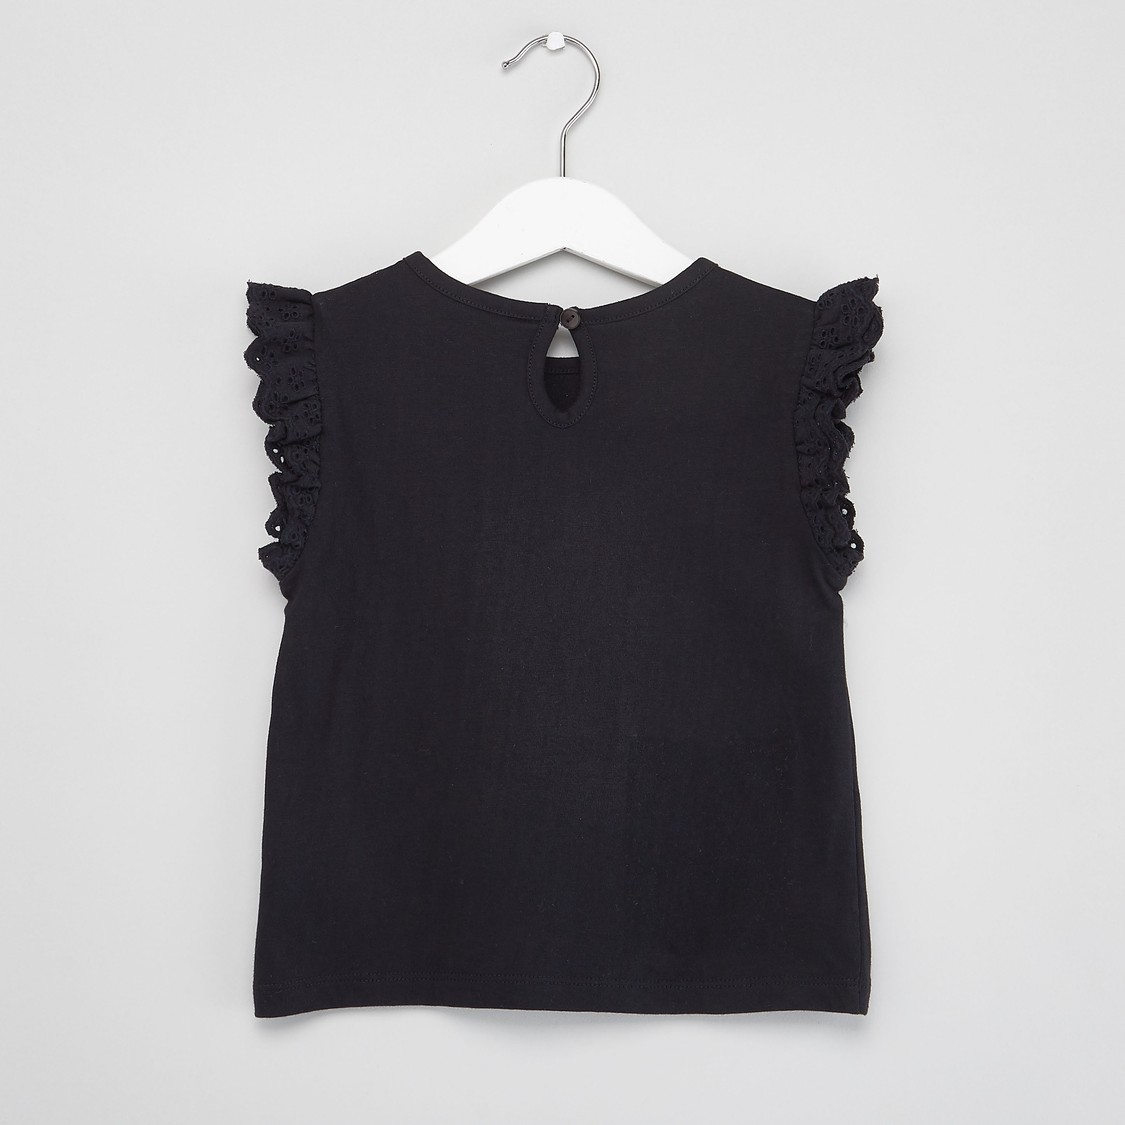 Printed T-shirt with Round Neck and Frill Sleeves